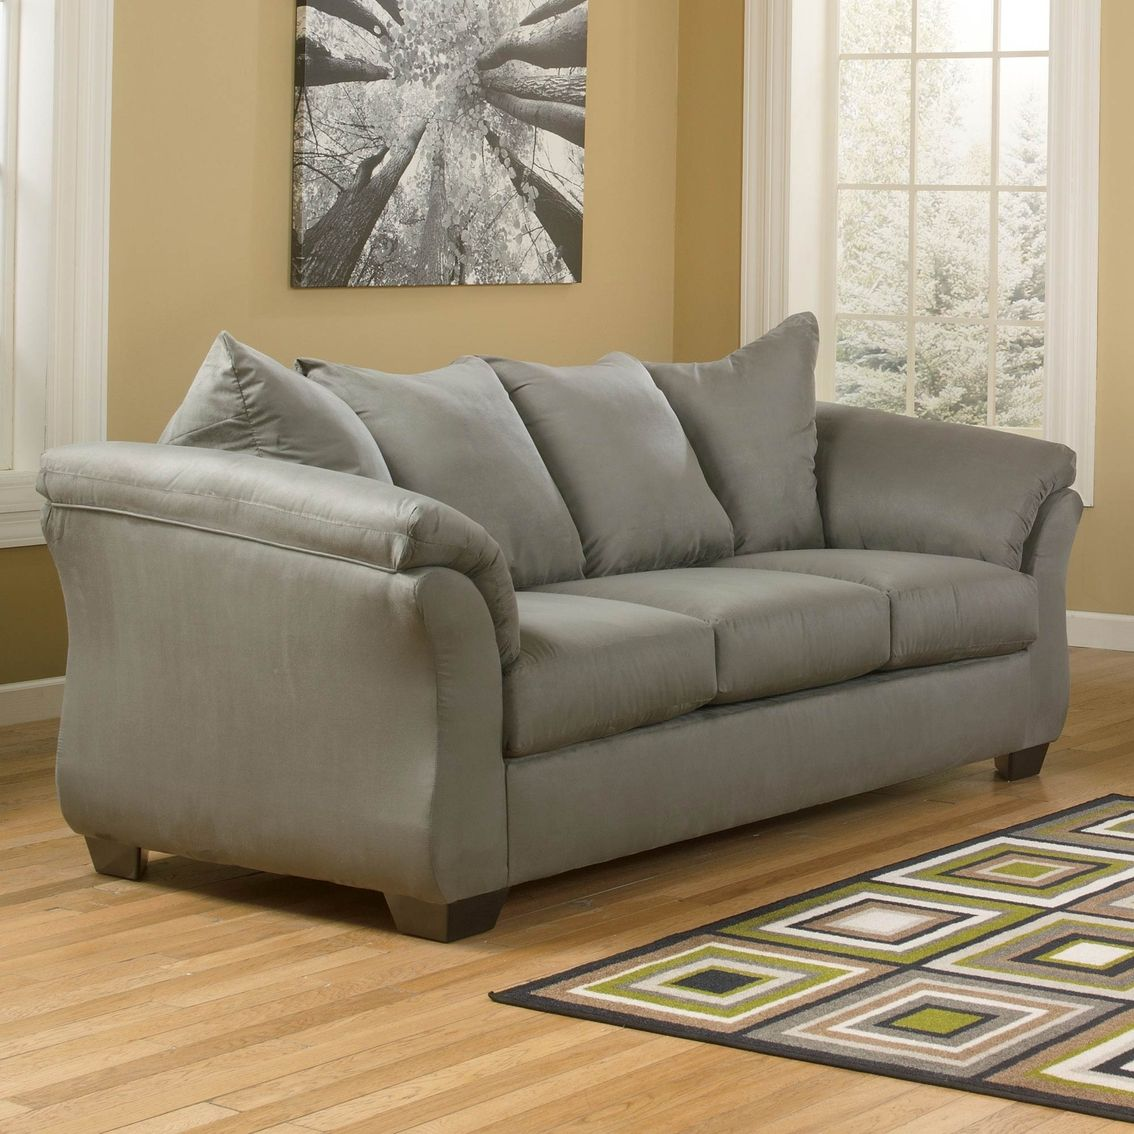 Cheap On Bx Website And Has Matching Love Seat